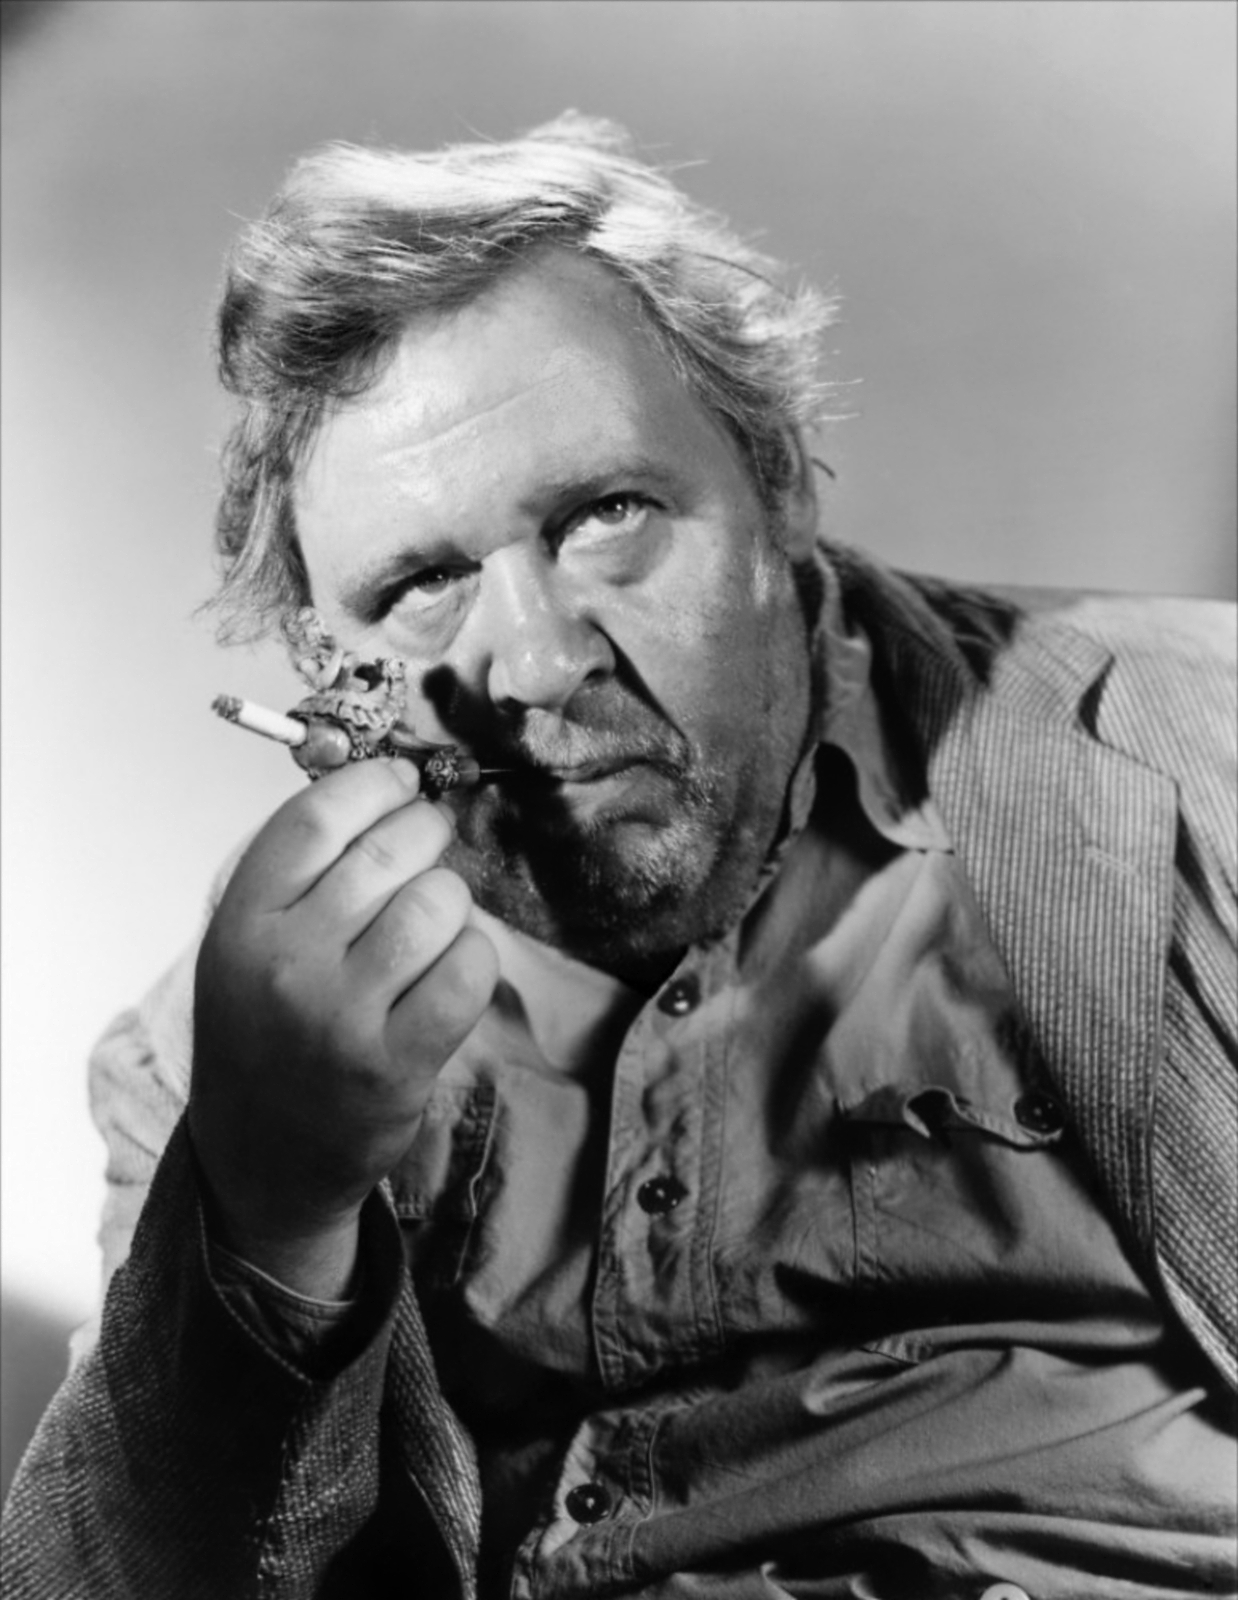 Charles Laughton in The Bribe (1949)